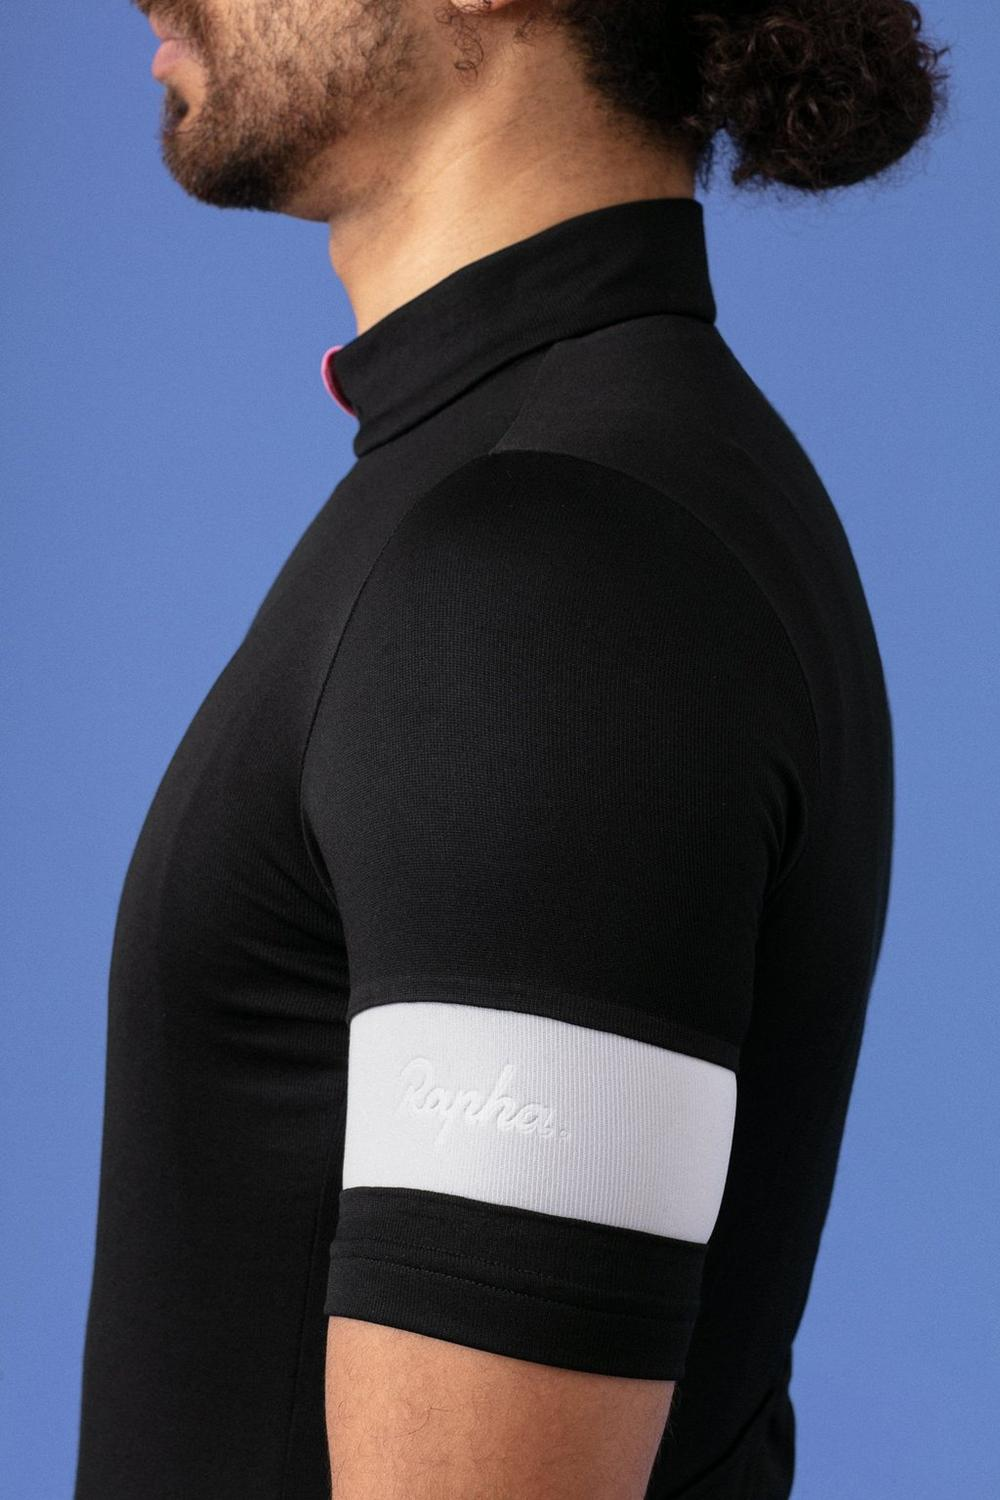 Rapha Classic Collection mens cycling jerseys merino cycling jersey